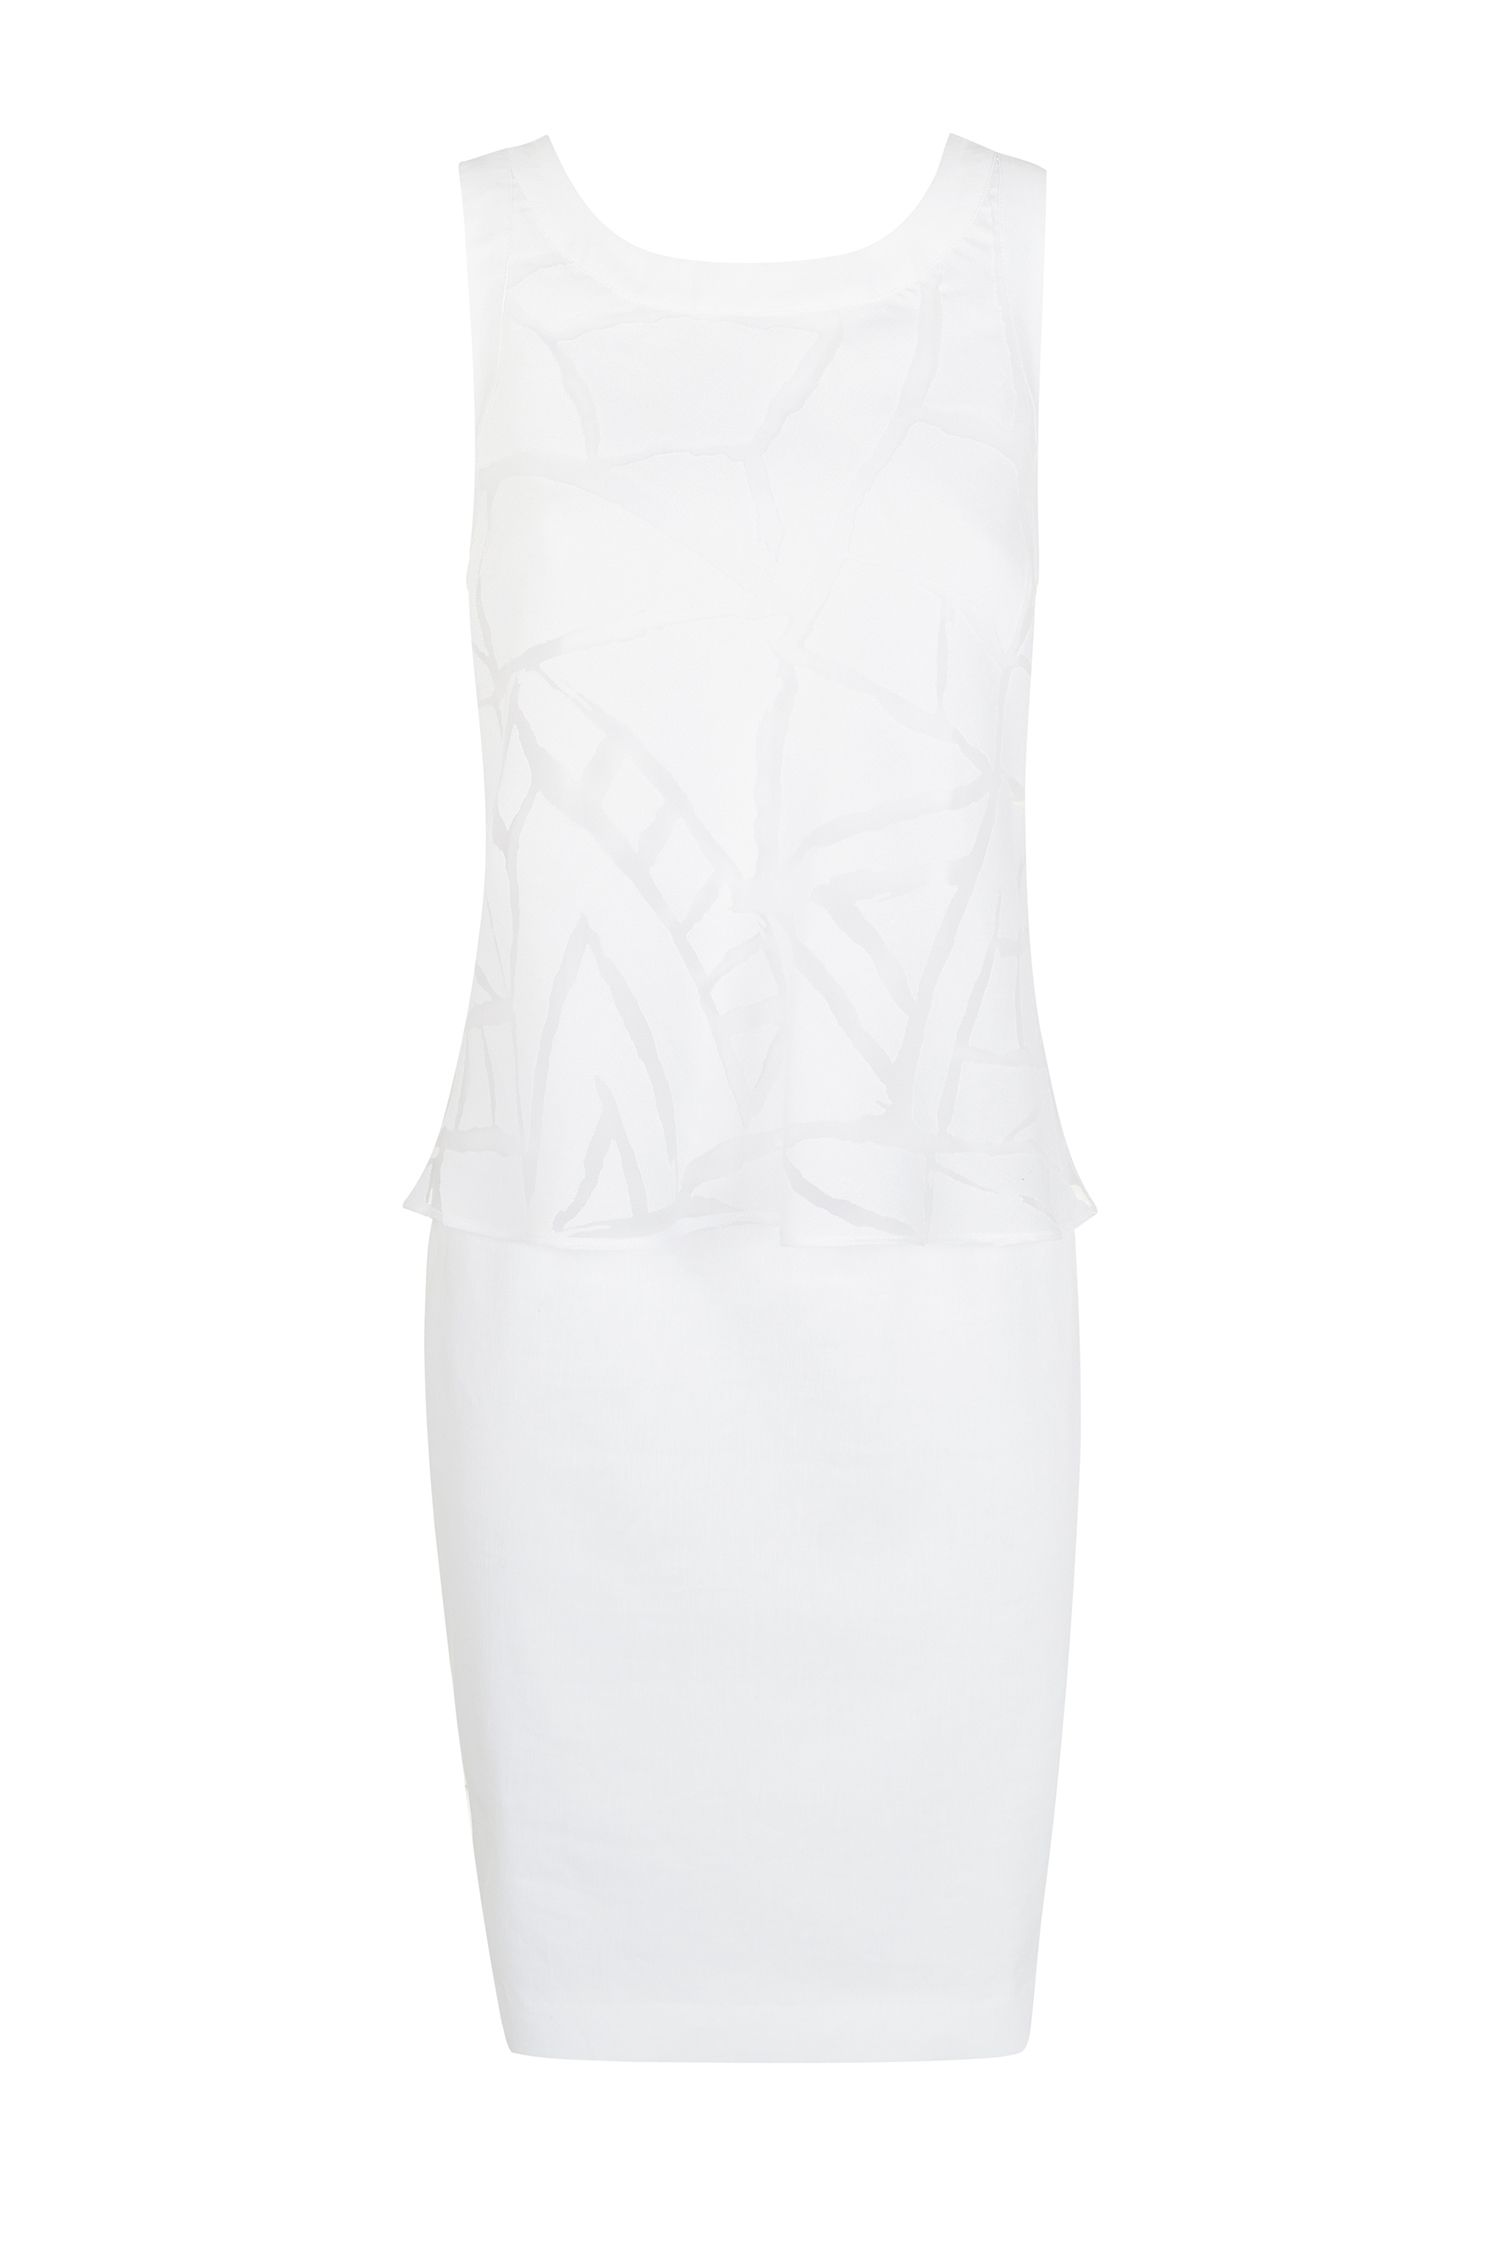 Damsel in a Dress Cirrus Dress, White